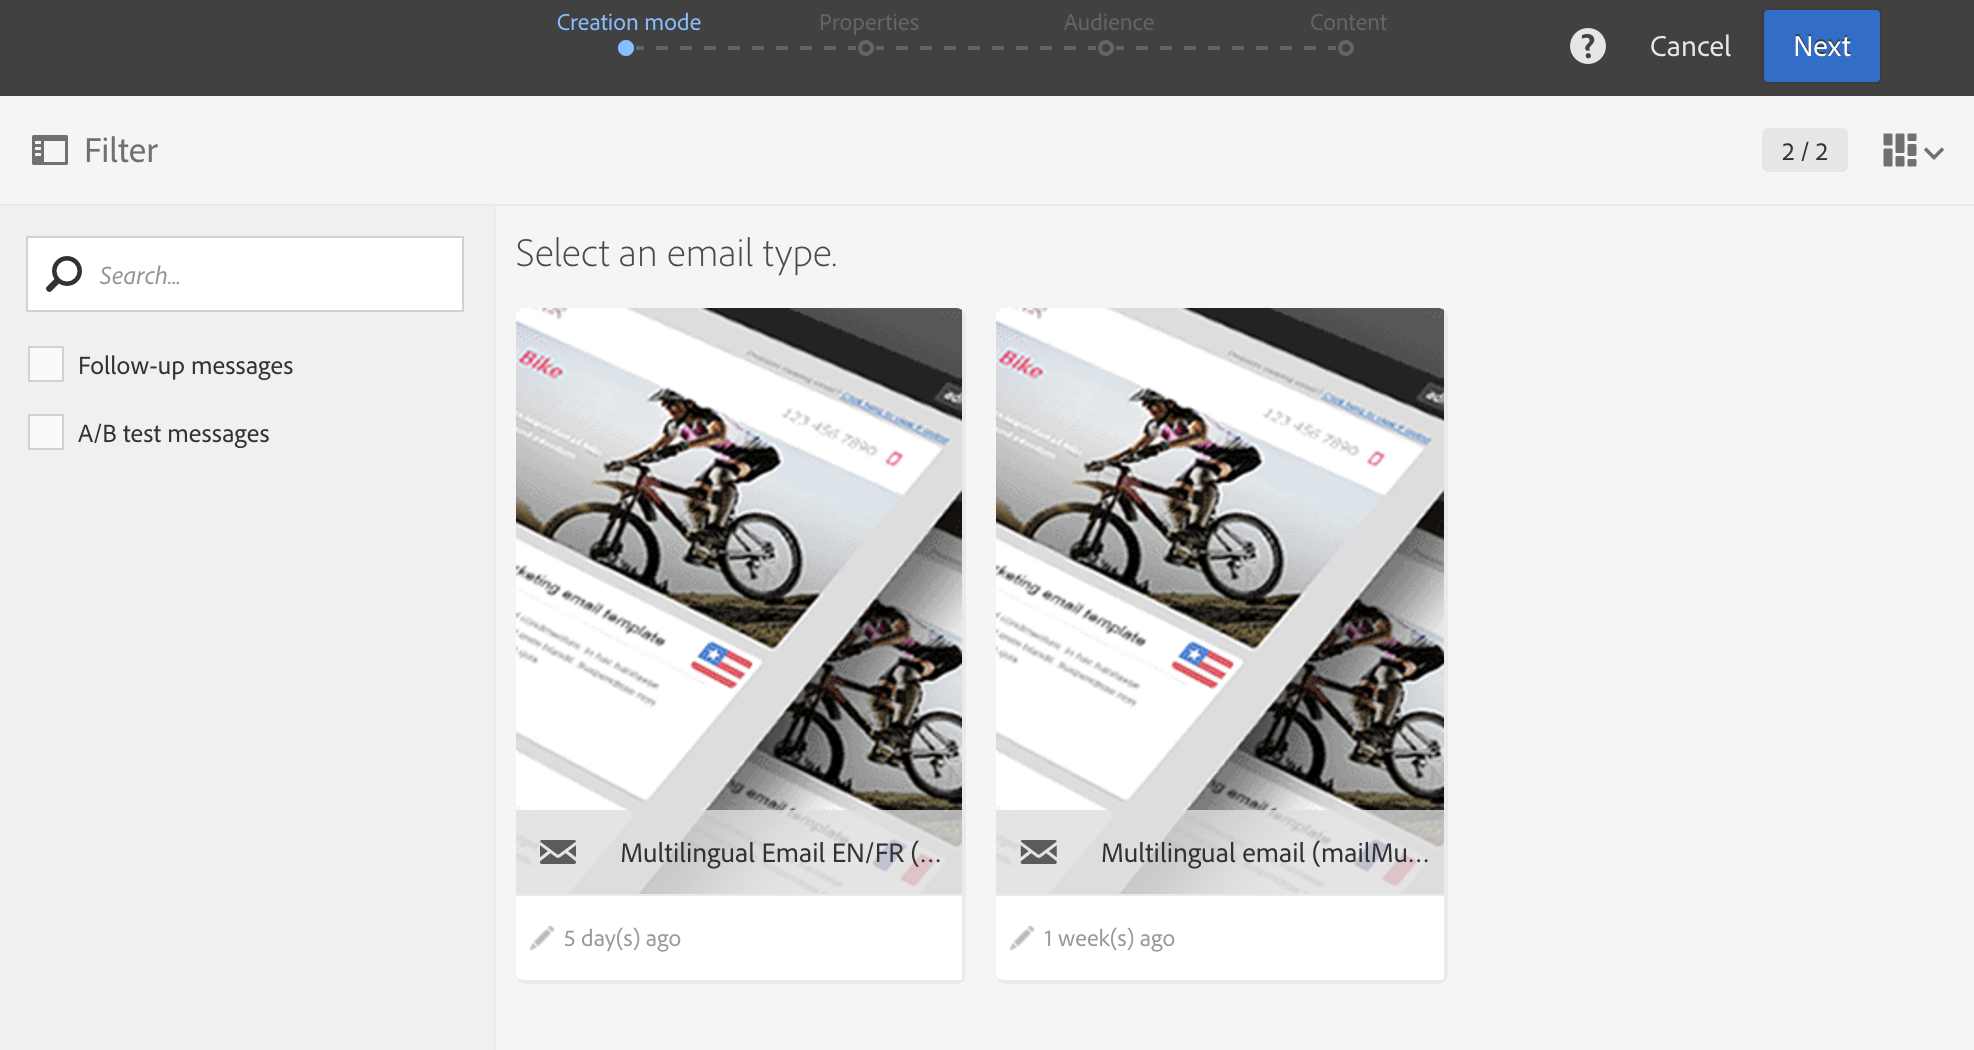 Creating A Multilingual Email